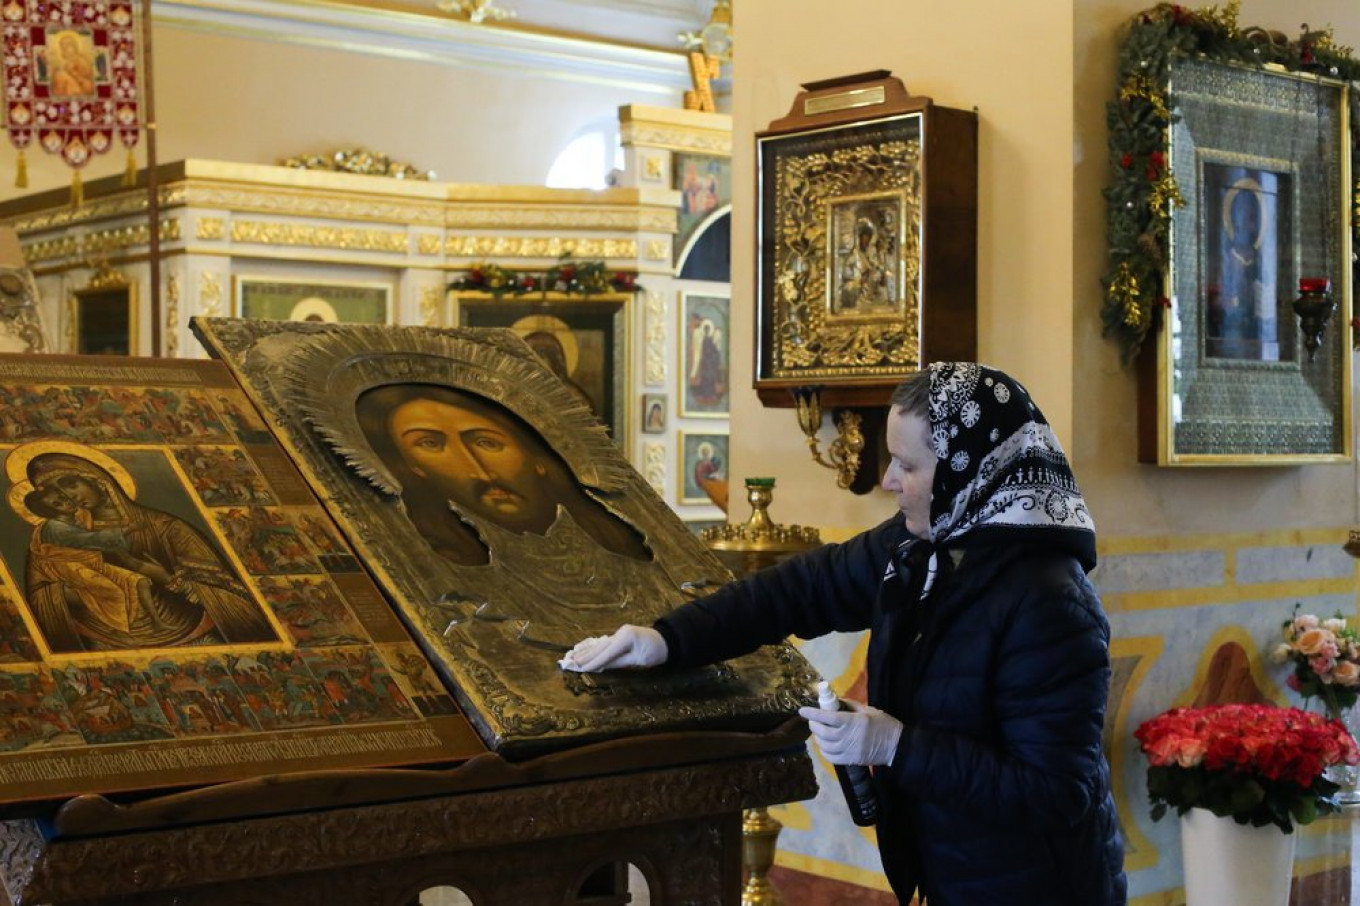 A worker disinfects an icon with an alcohol solution in the Church of St. Alexis in Rogozhskaya Sloboda. Sergei Vedyashkin / Moskva News Agency